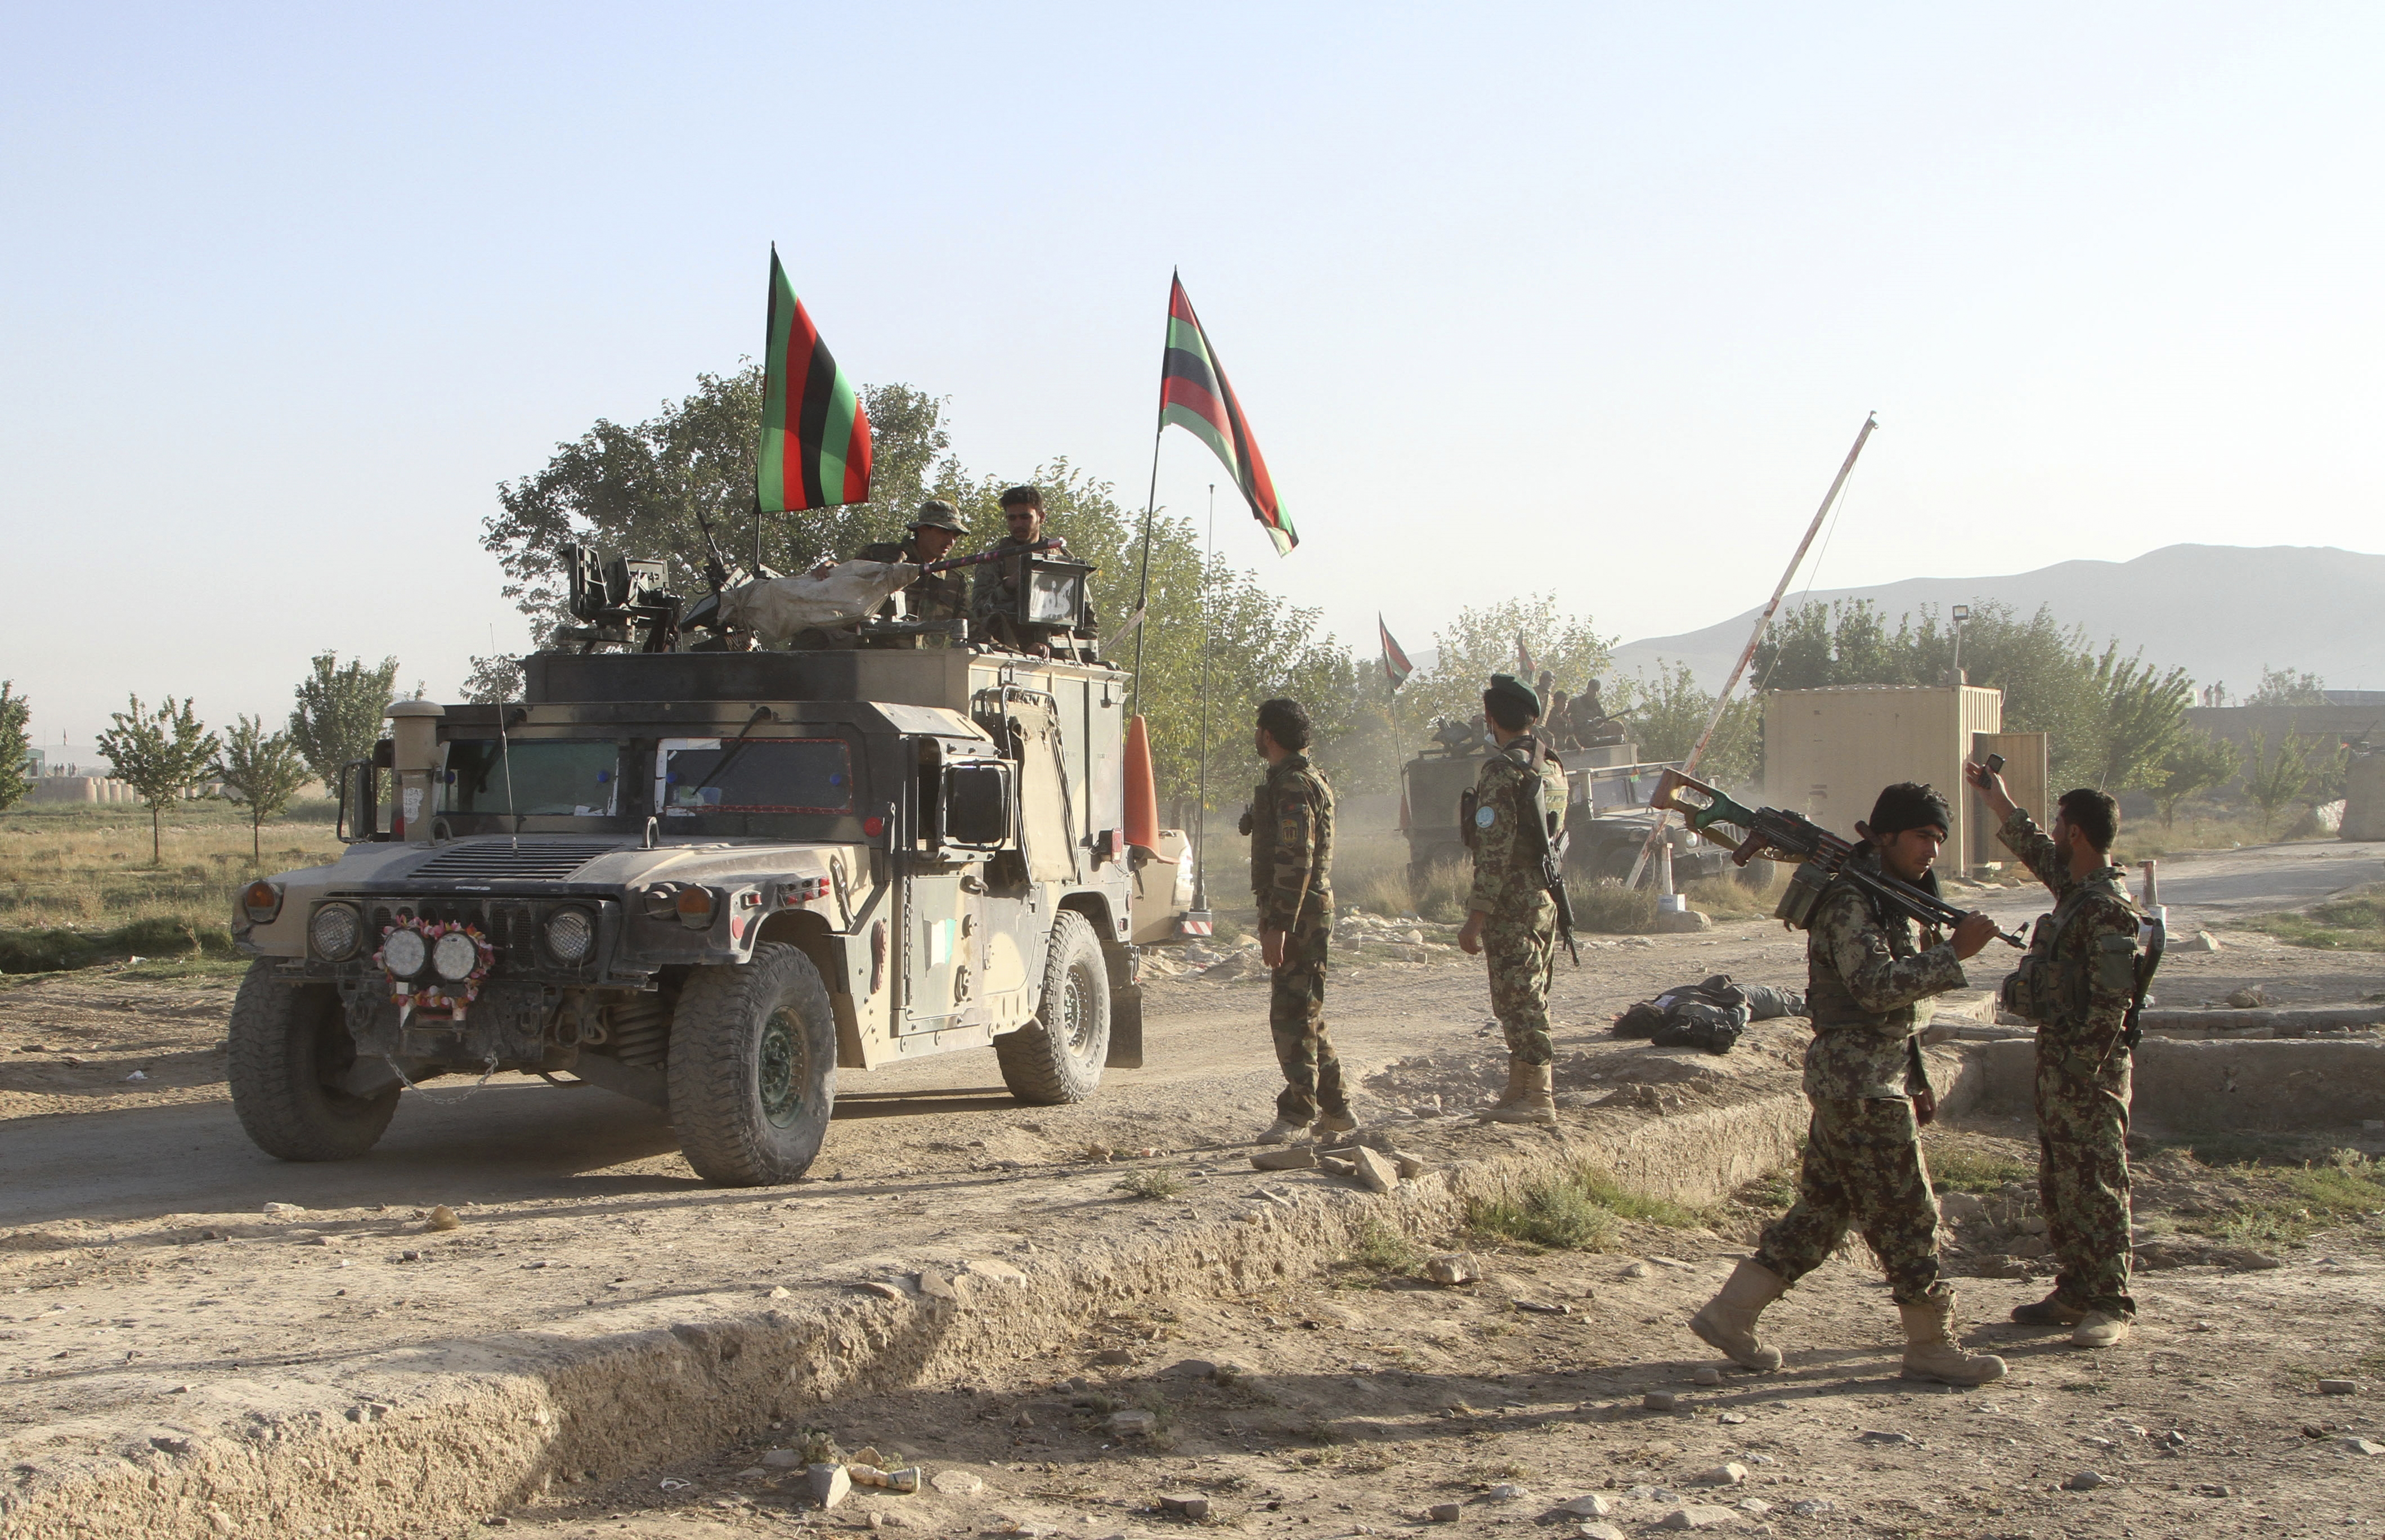 Soldiers with the Afghan national army stand guard near the dead body of a Taliban attacker in front of the main prison building after an attack in Ghazni province, eastern Afghanistan, Monday, Sept. 14, 2015.